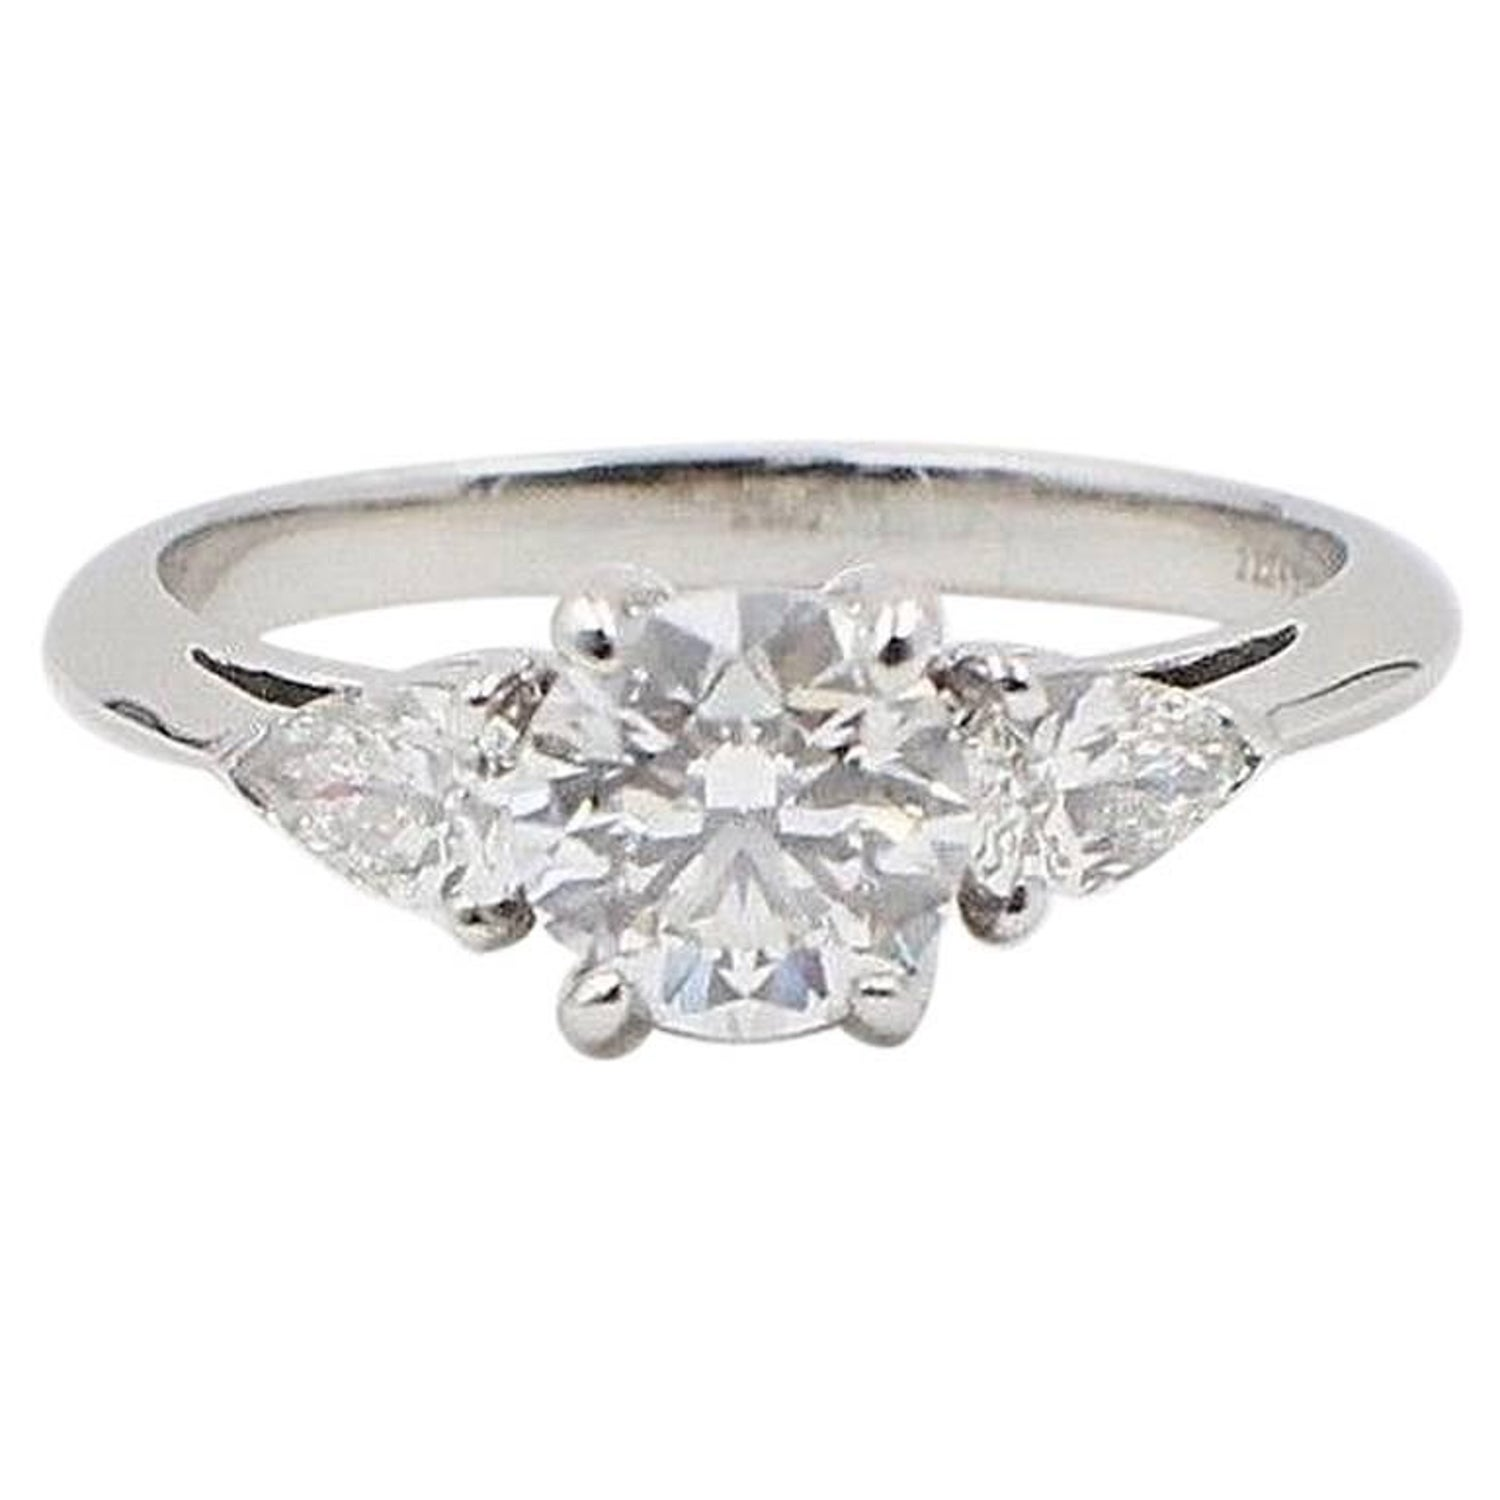 c2a275740 Tiffany and Co. Three-Stone Diamond Engagement Ring 1.60 Carat E VVS1  Platinum For Sale at 1stdibs